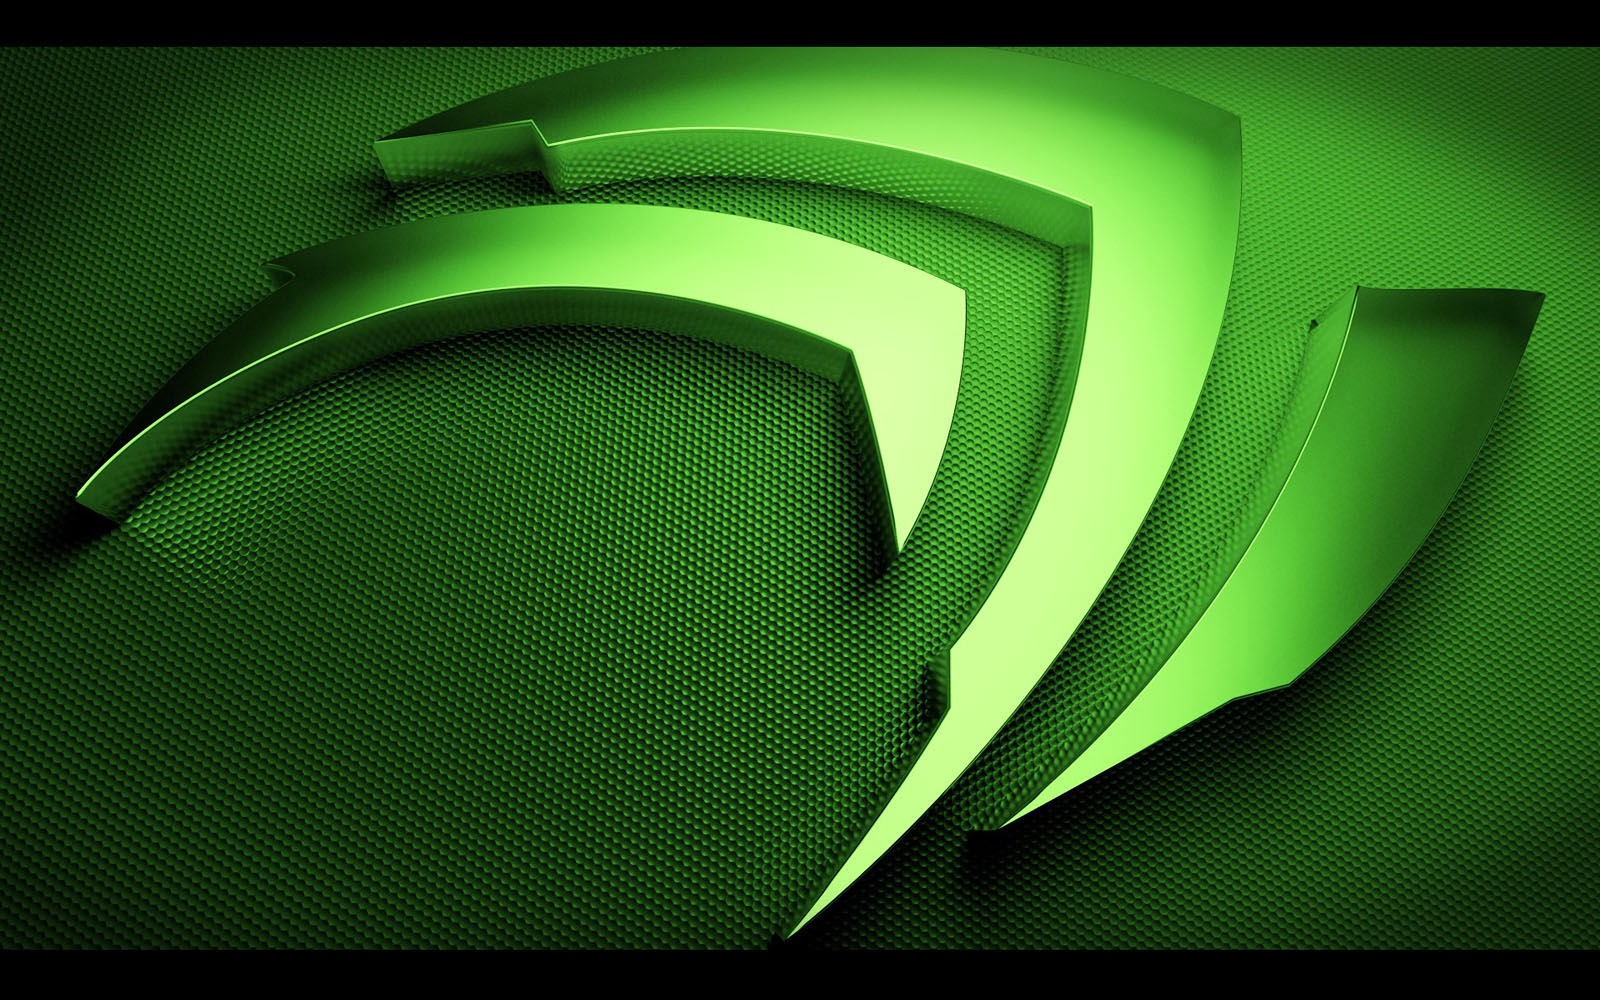 Wallpapers Nvidia Wallpapers